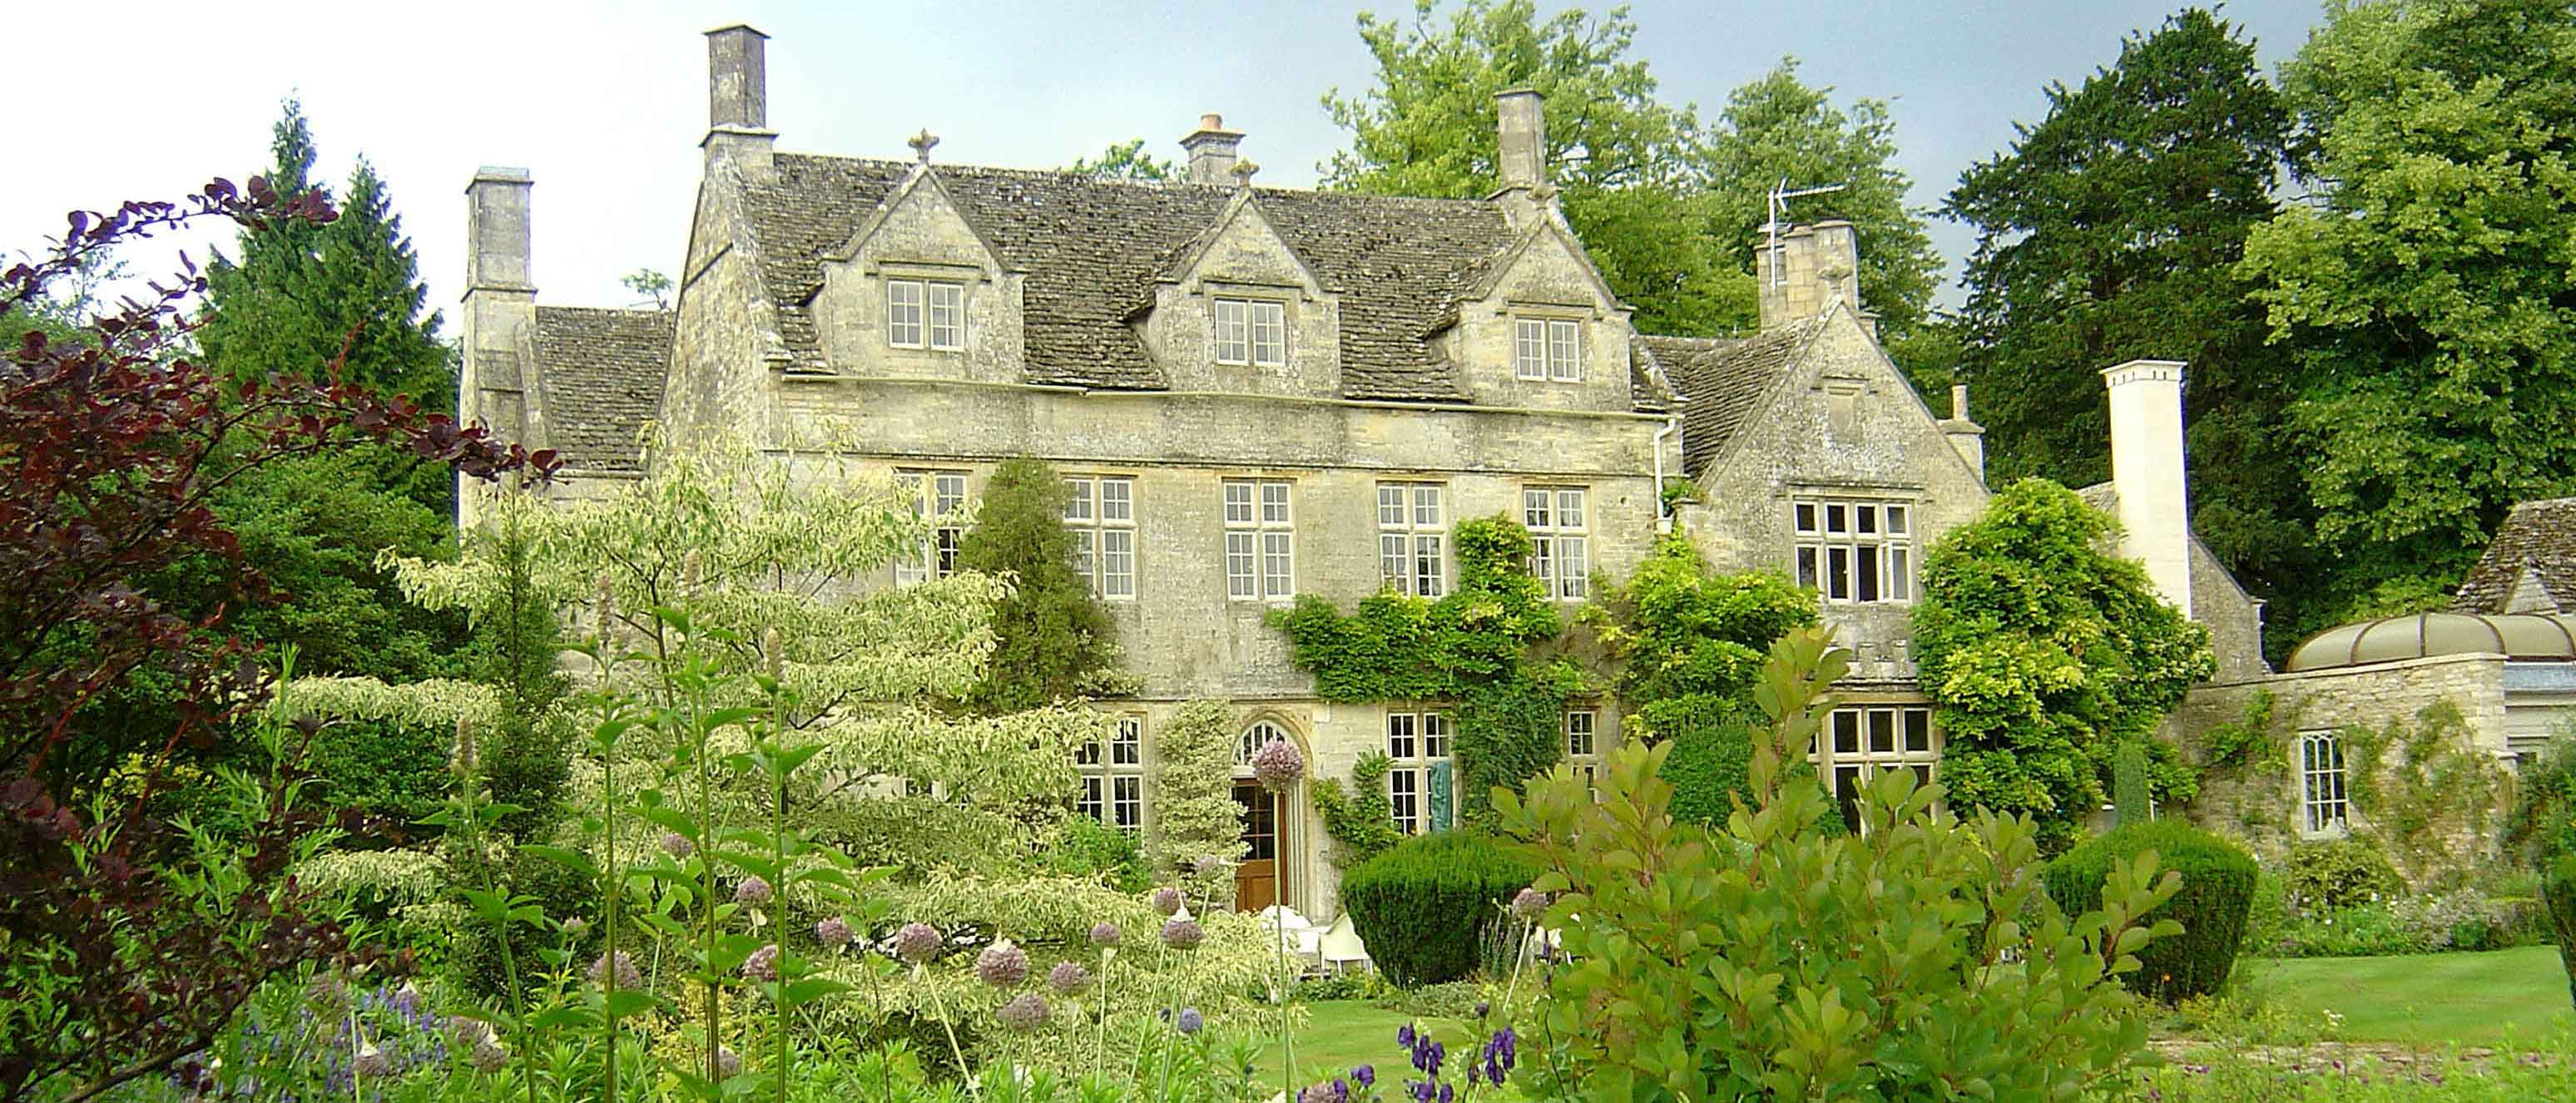 A Dream Family-friendly Destination In The English Countryside